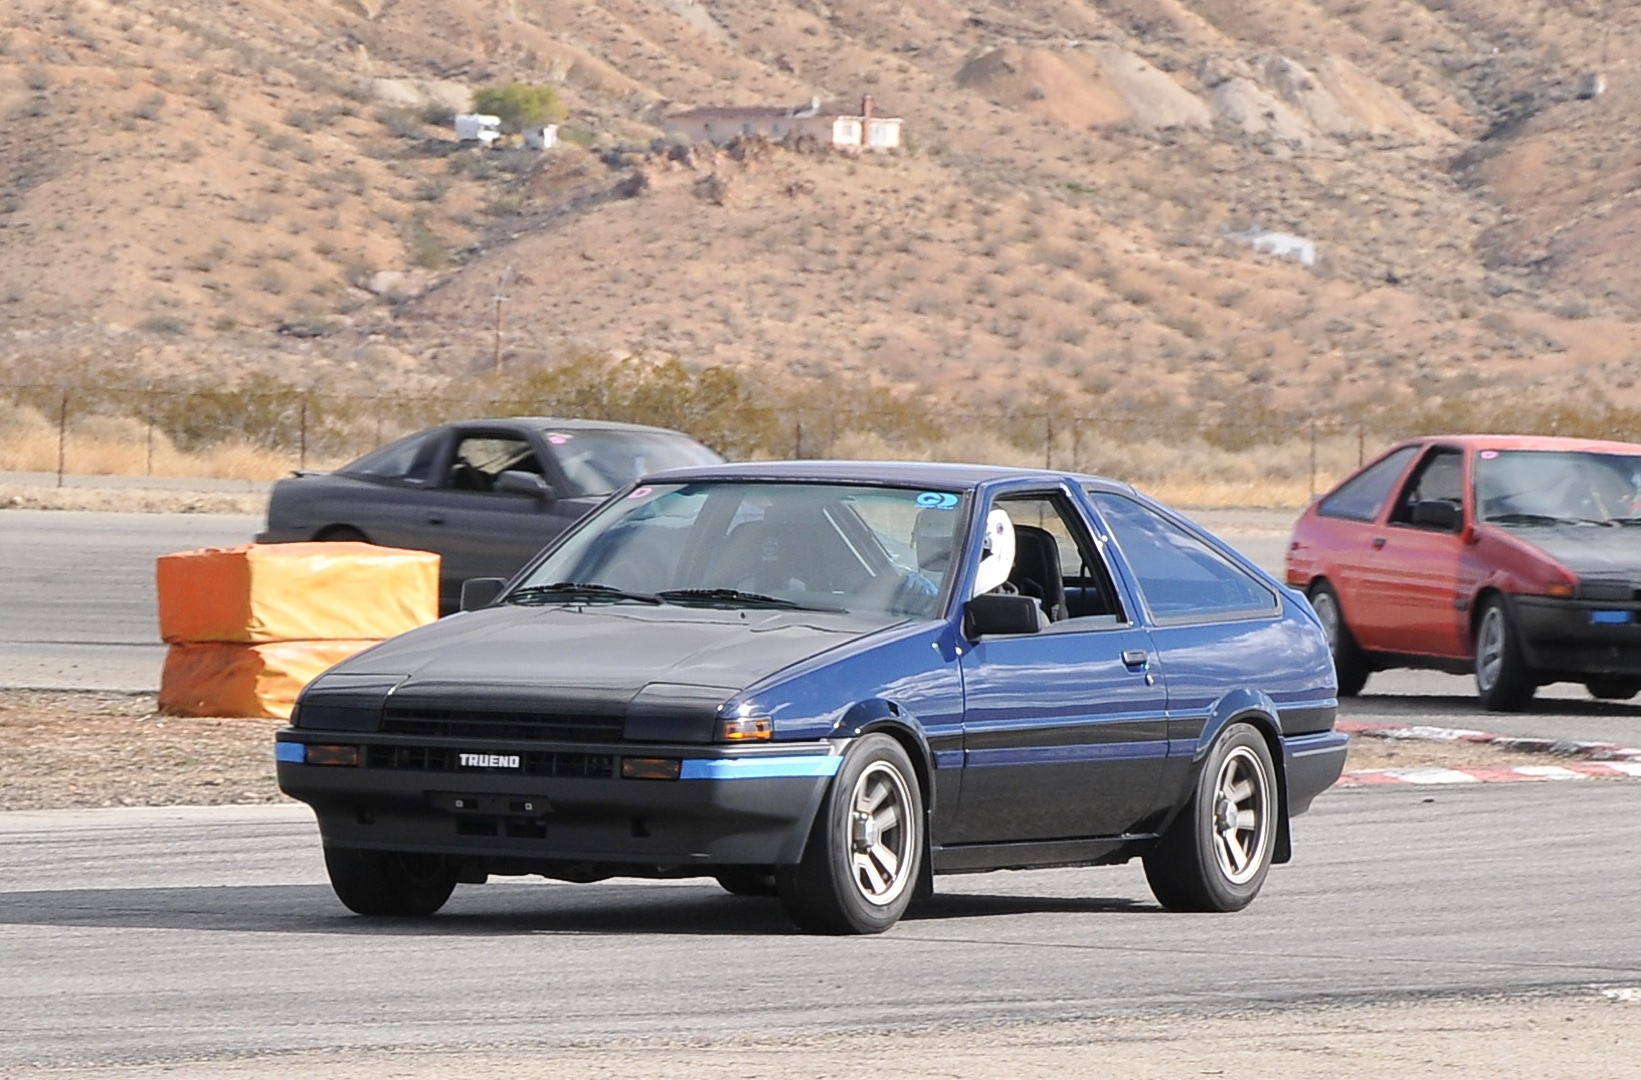 AE86, zenki, blue, hatch,track day, grip day,